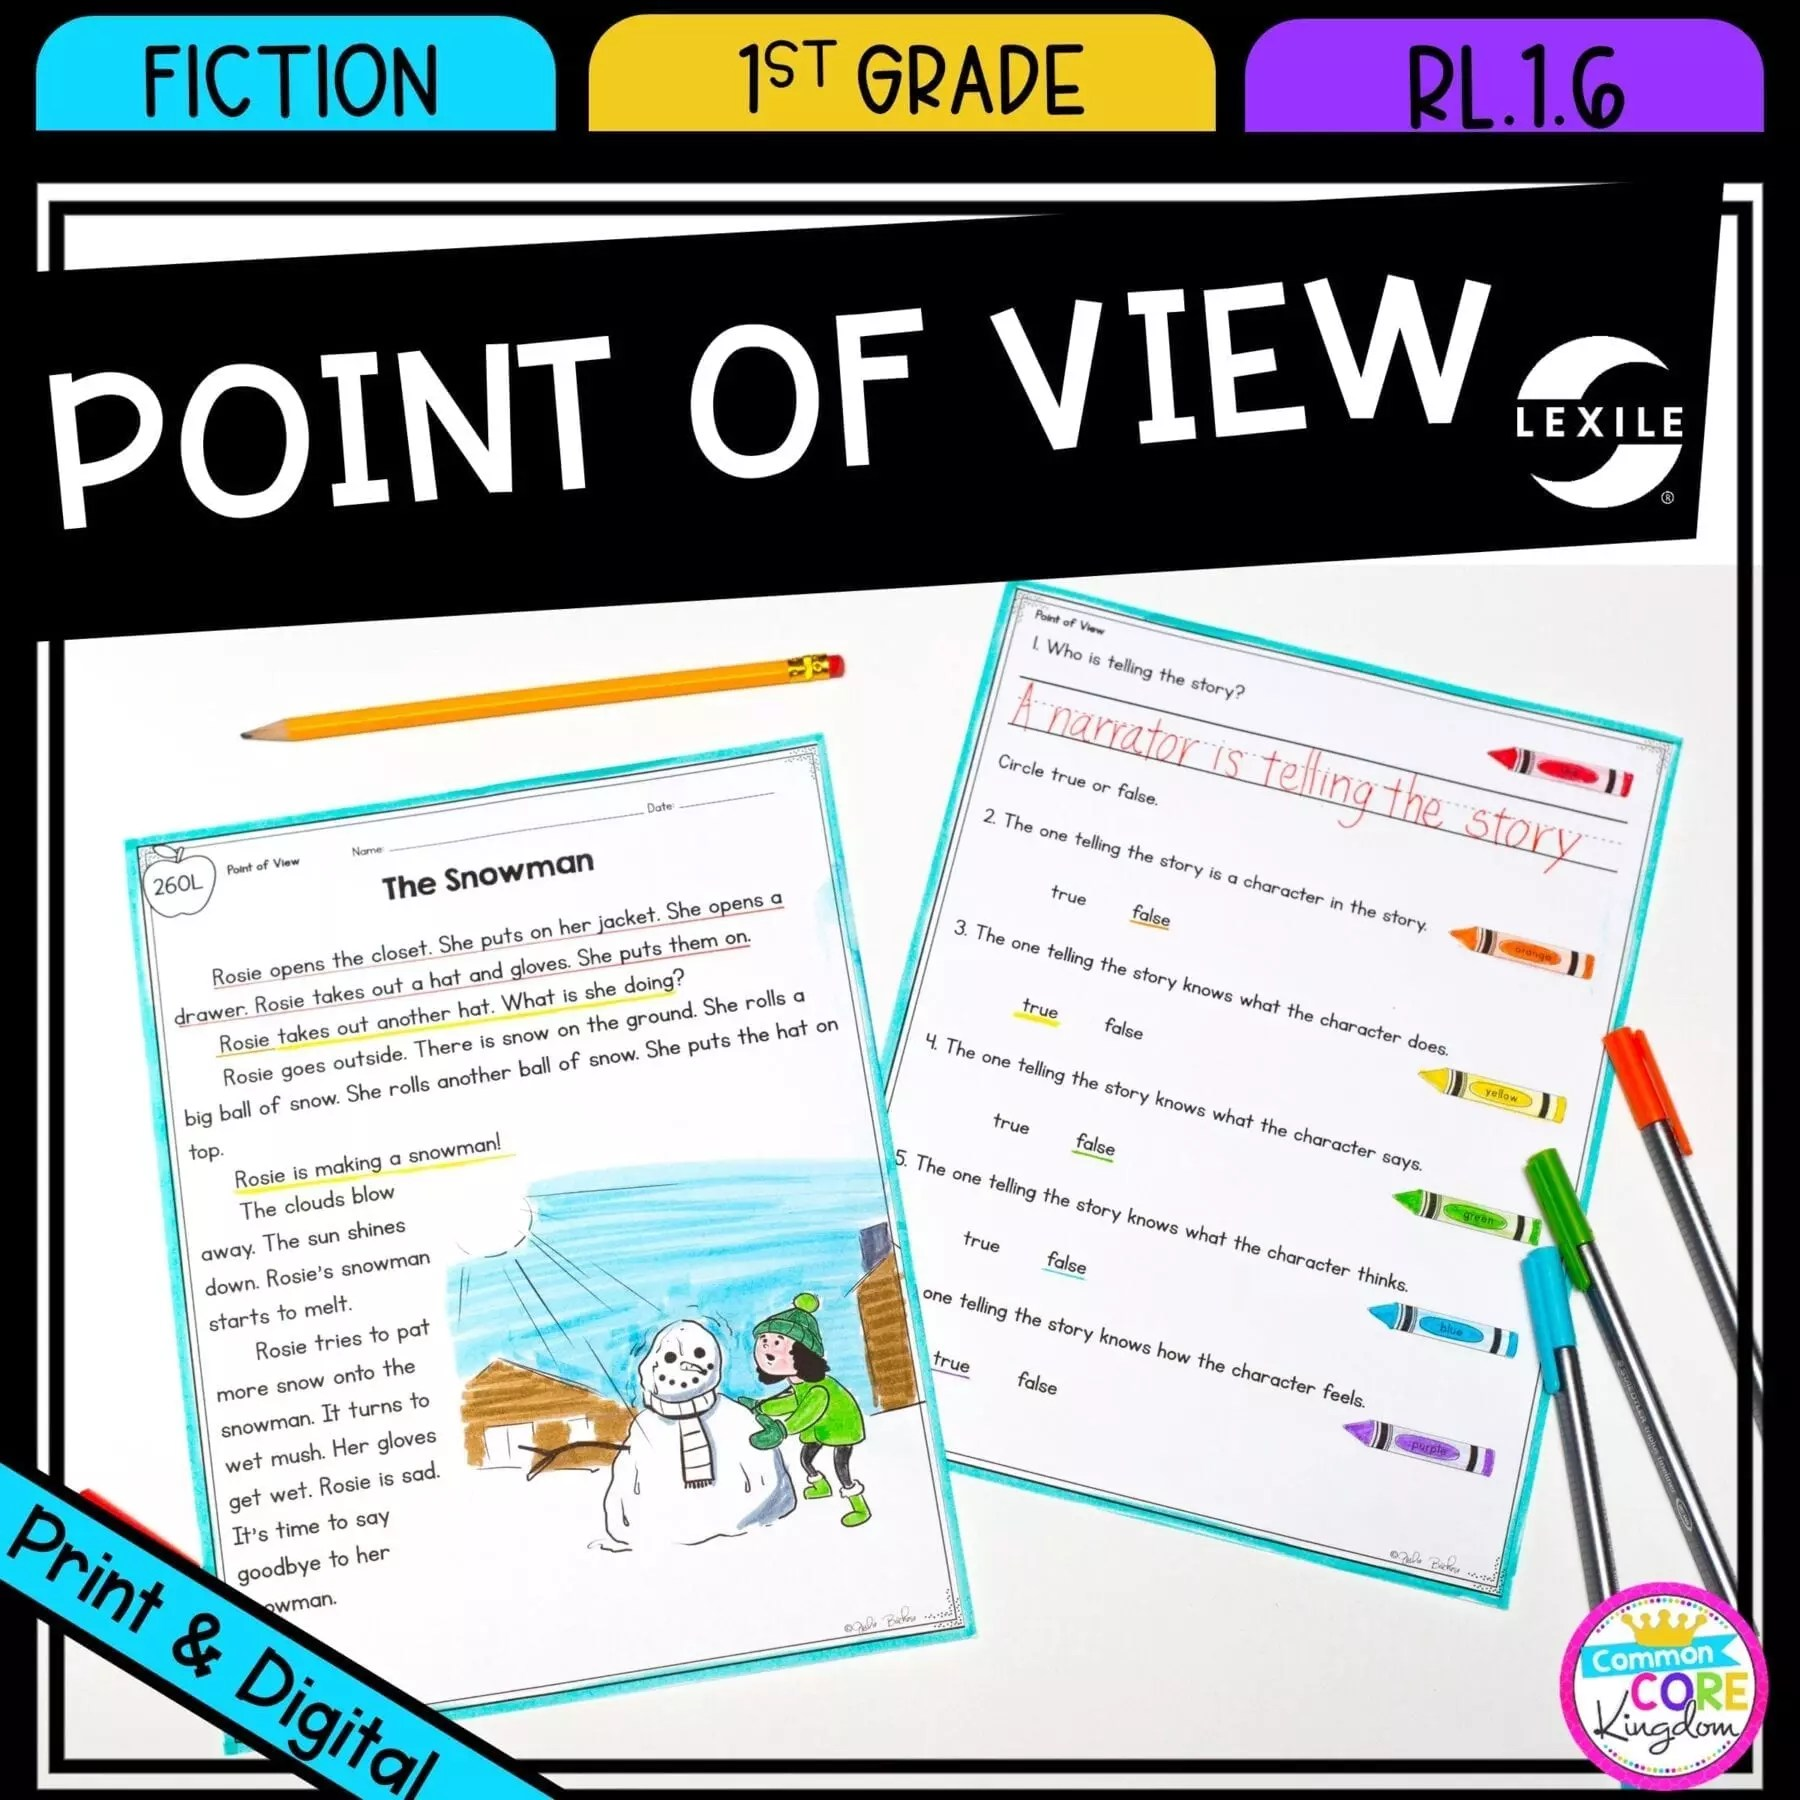 small resolution of Point of View 1st Grade   RL.1.6 Google Slides Distance Learning Pack